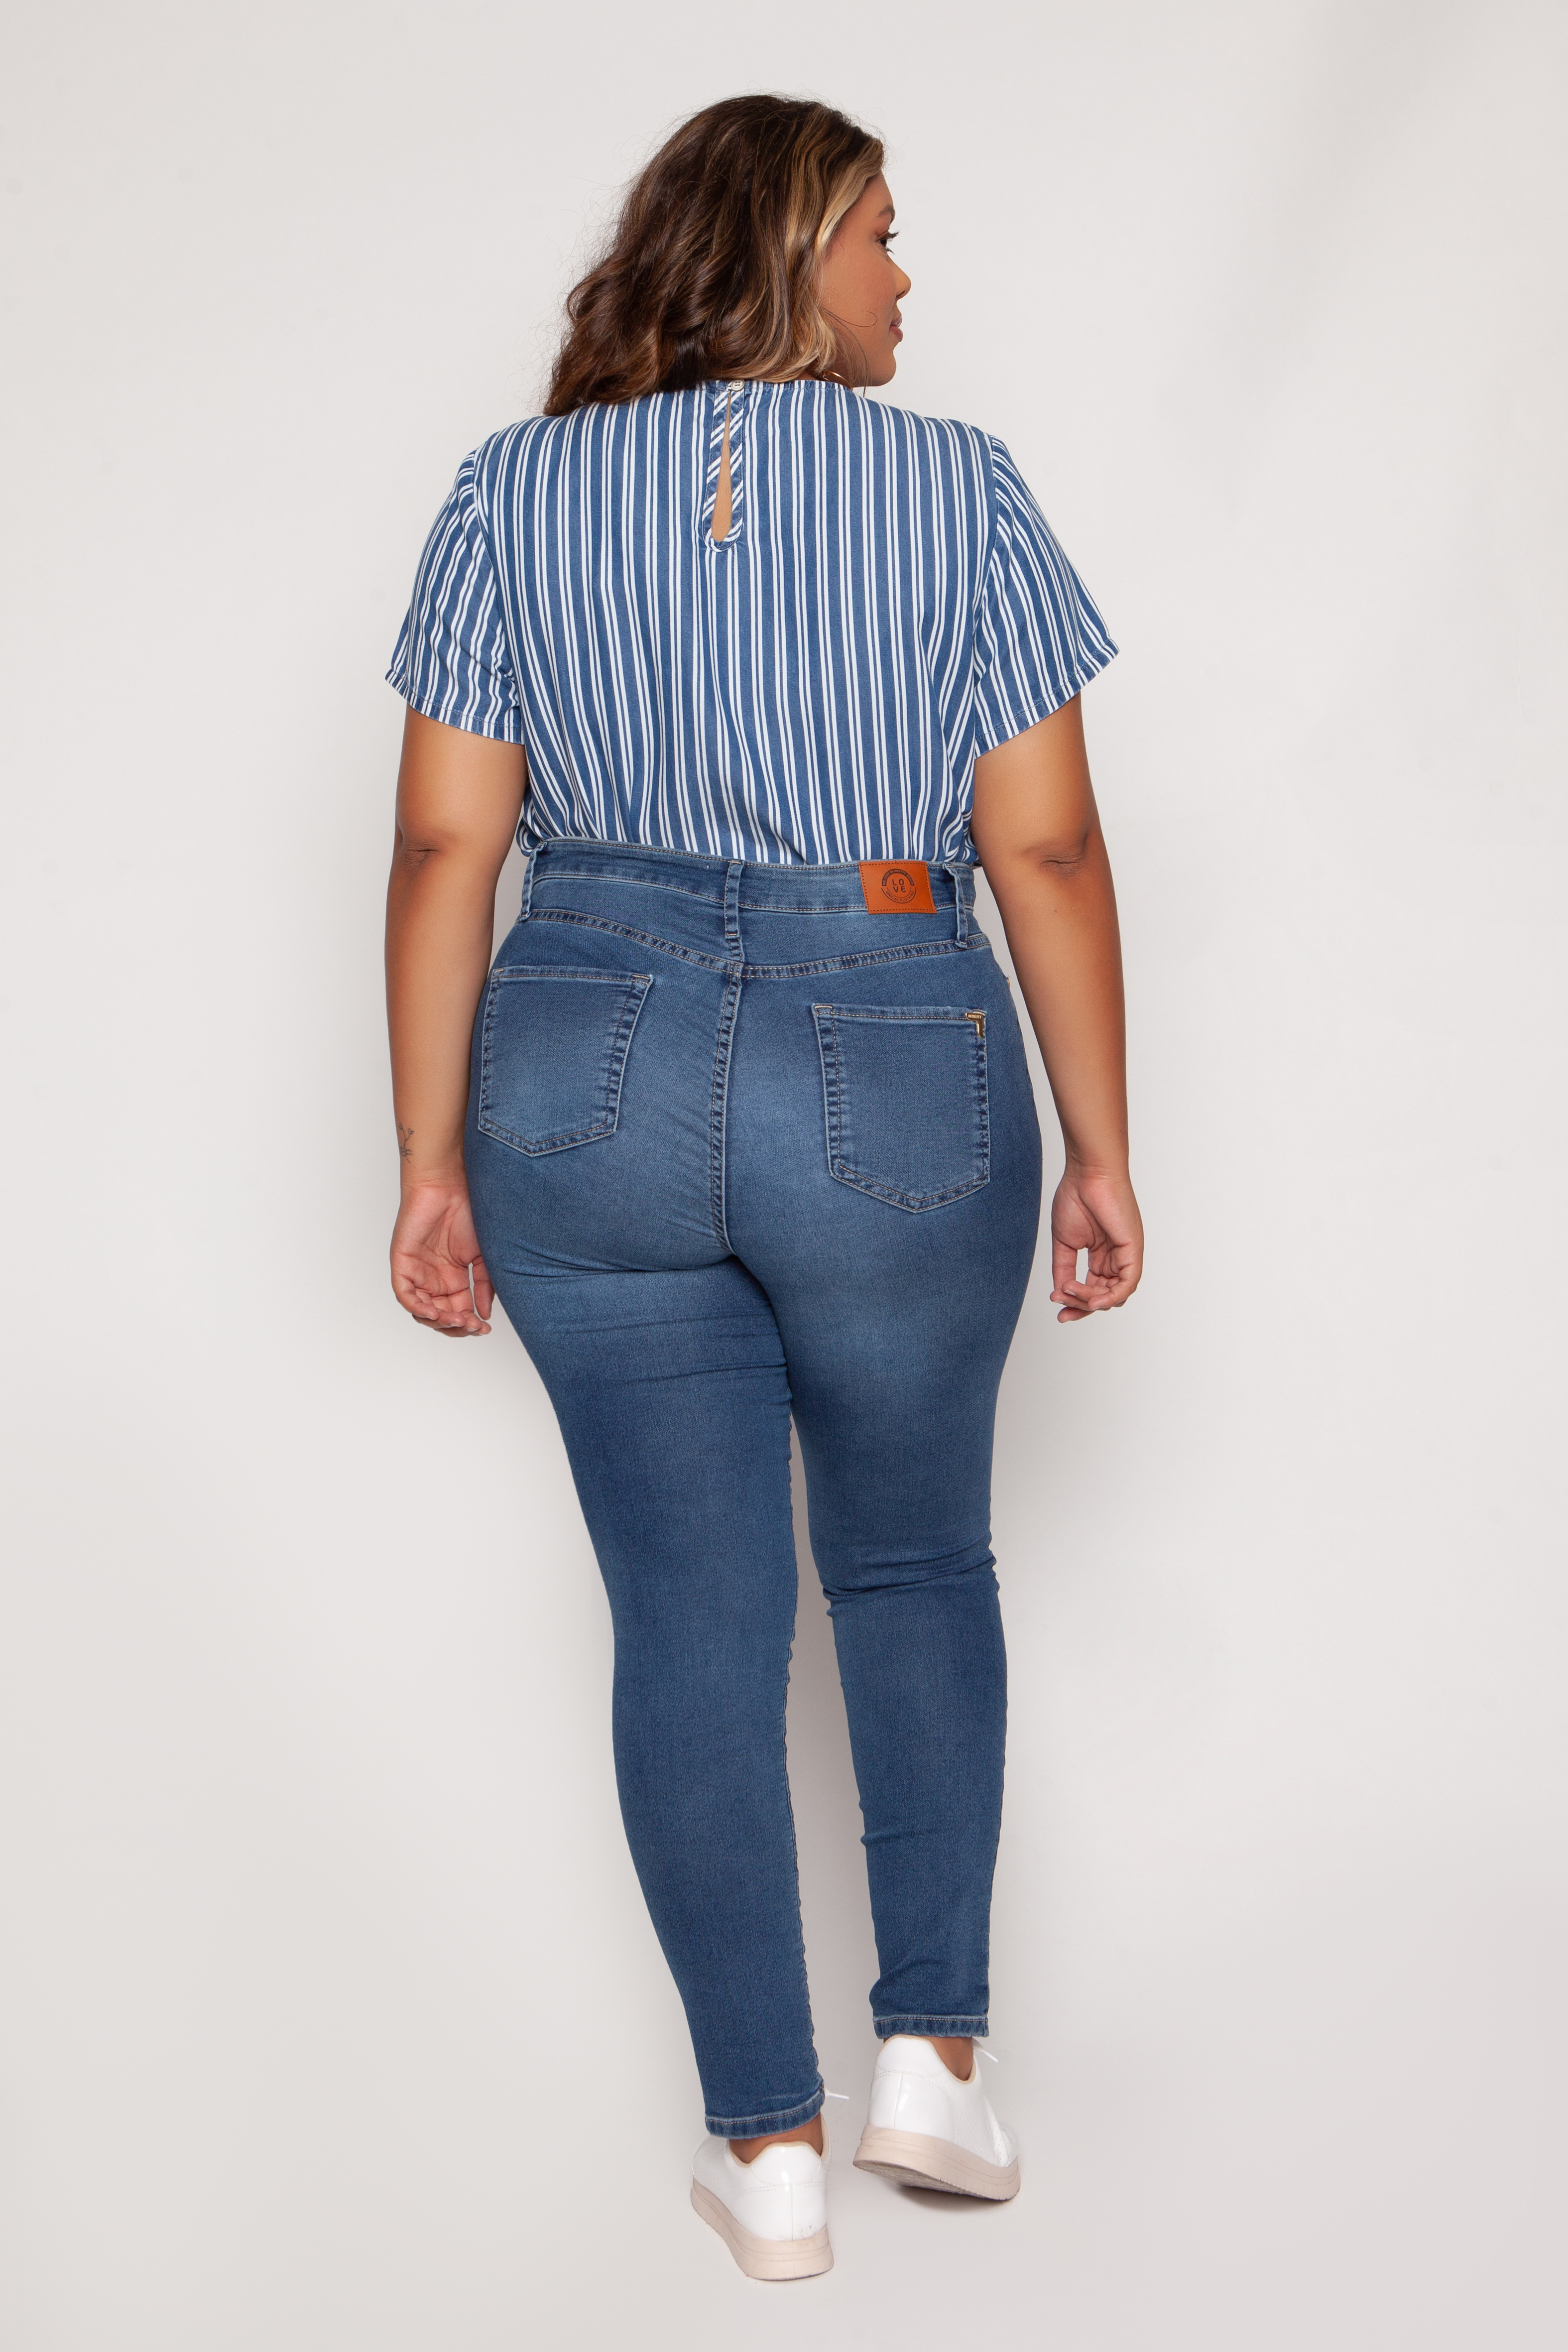 LS1937_Blusa_Plus_Size_Cropped_Listrada_Verona_Jeans_AZUL_4